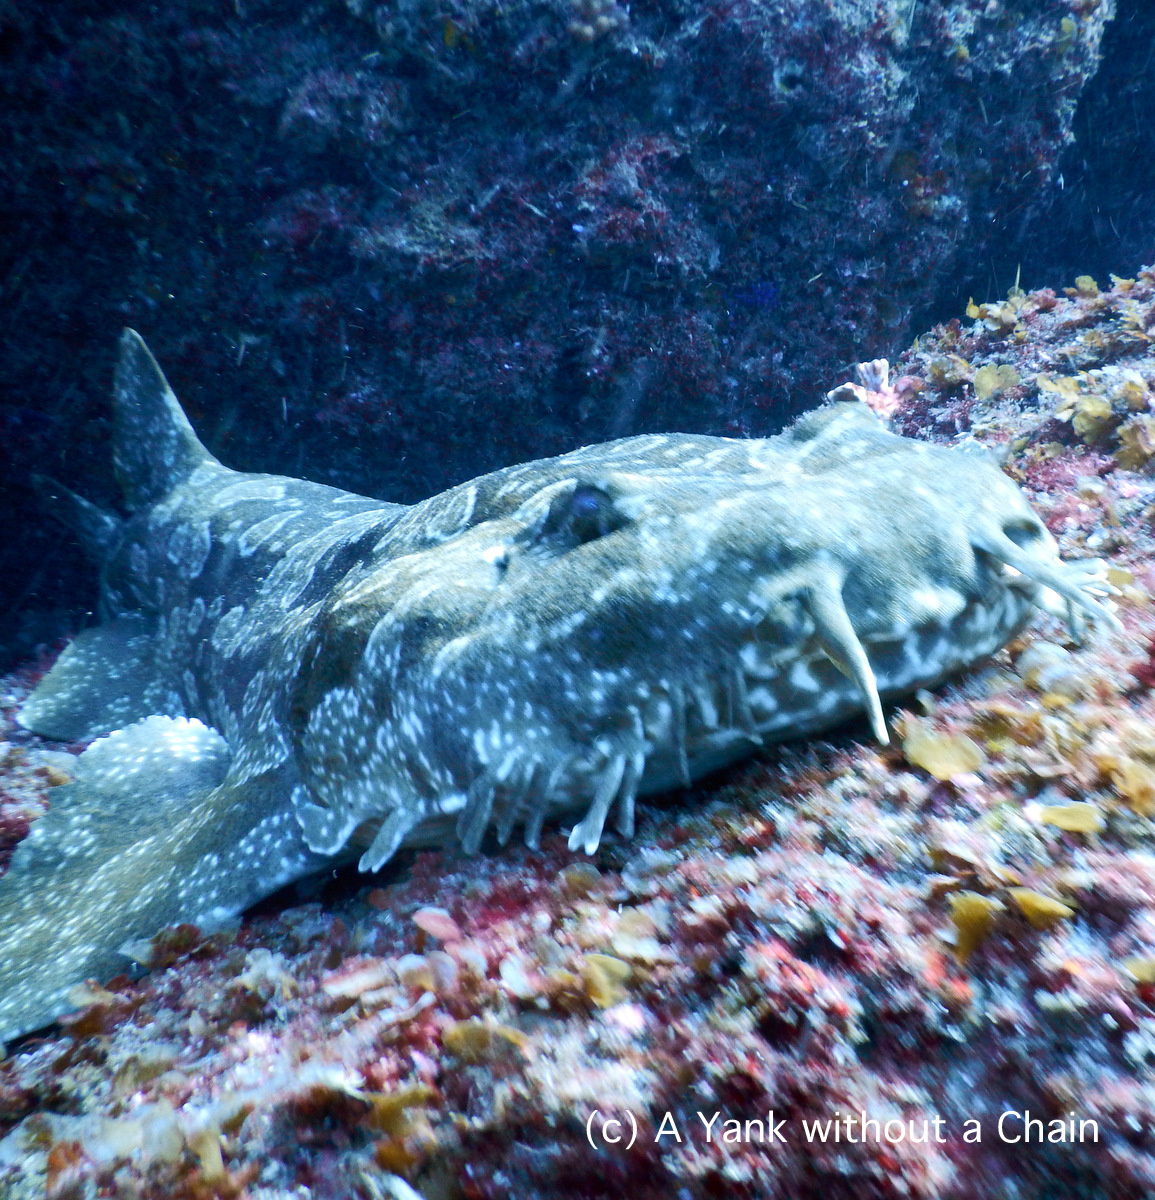 Up Close And Personal With A Wobbegong Carpet Shark At Shag Rock Dive Site